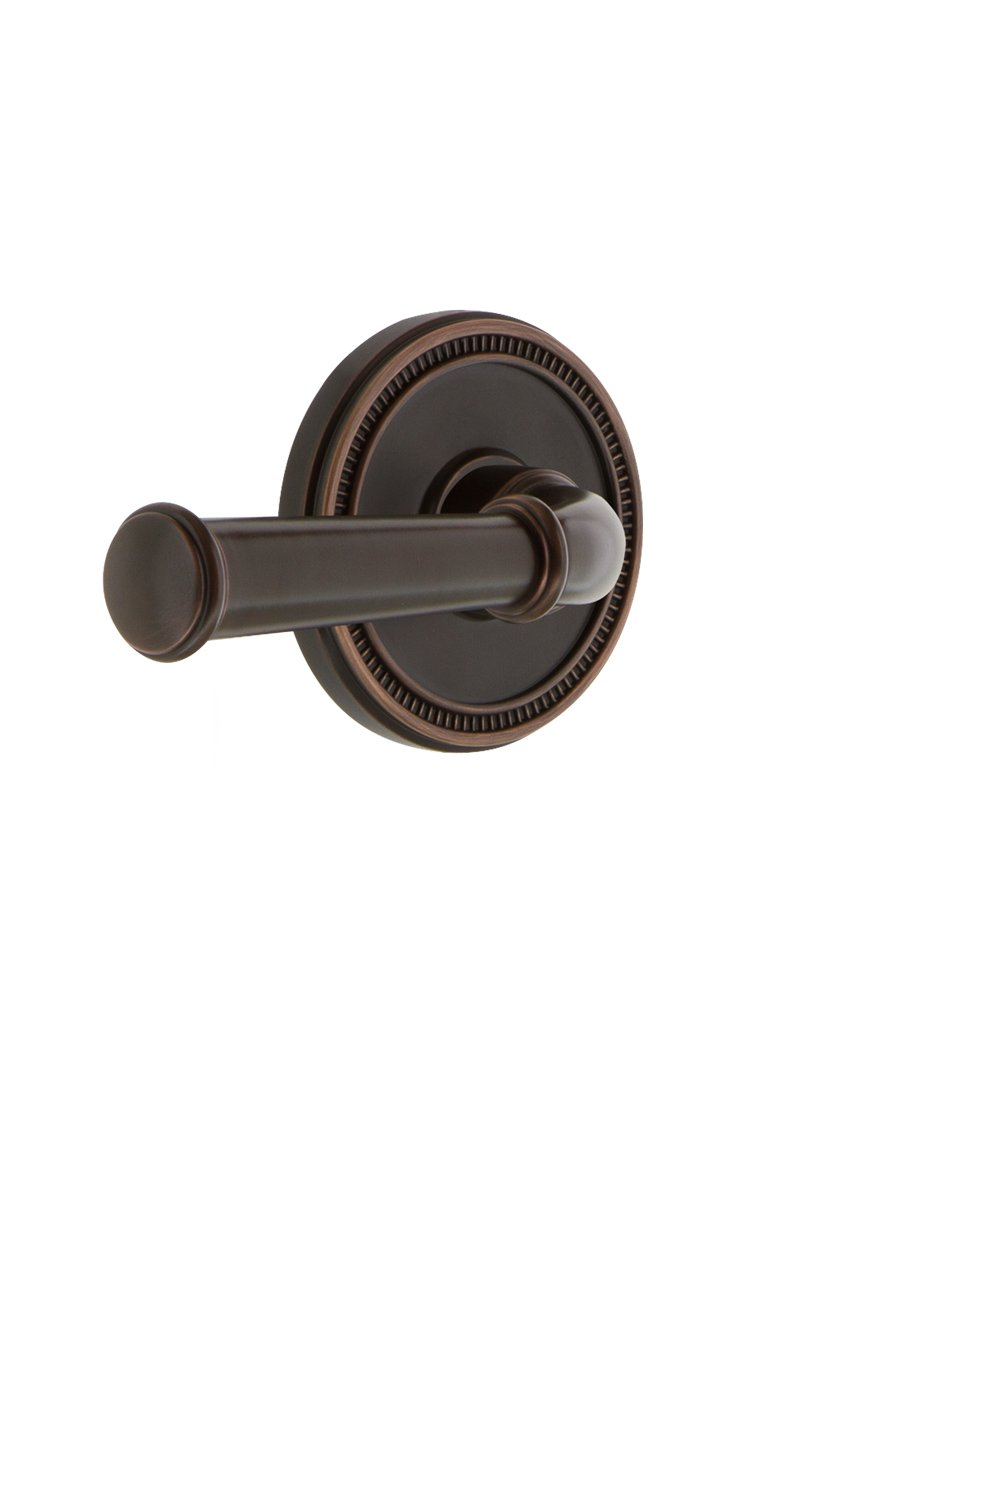 Grandeur 820581 Soleil Rosette Double Dummy with Georgetown Lever in Timeless Bronze